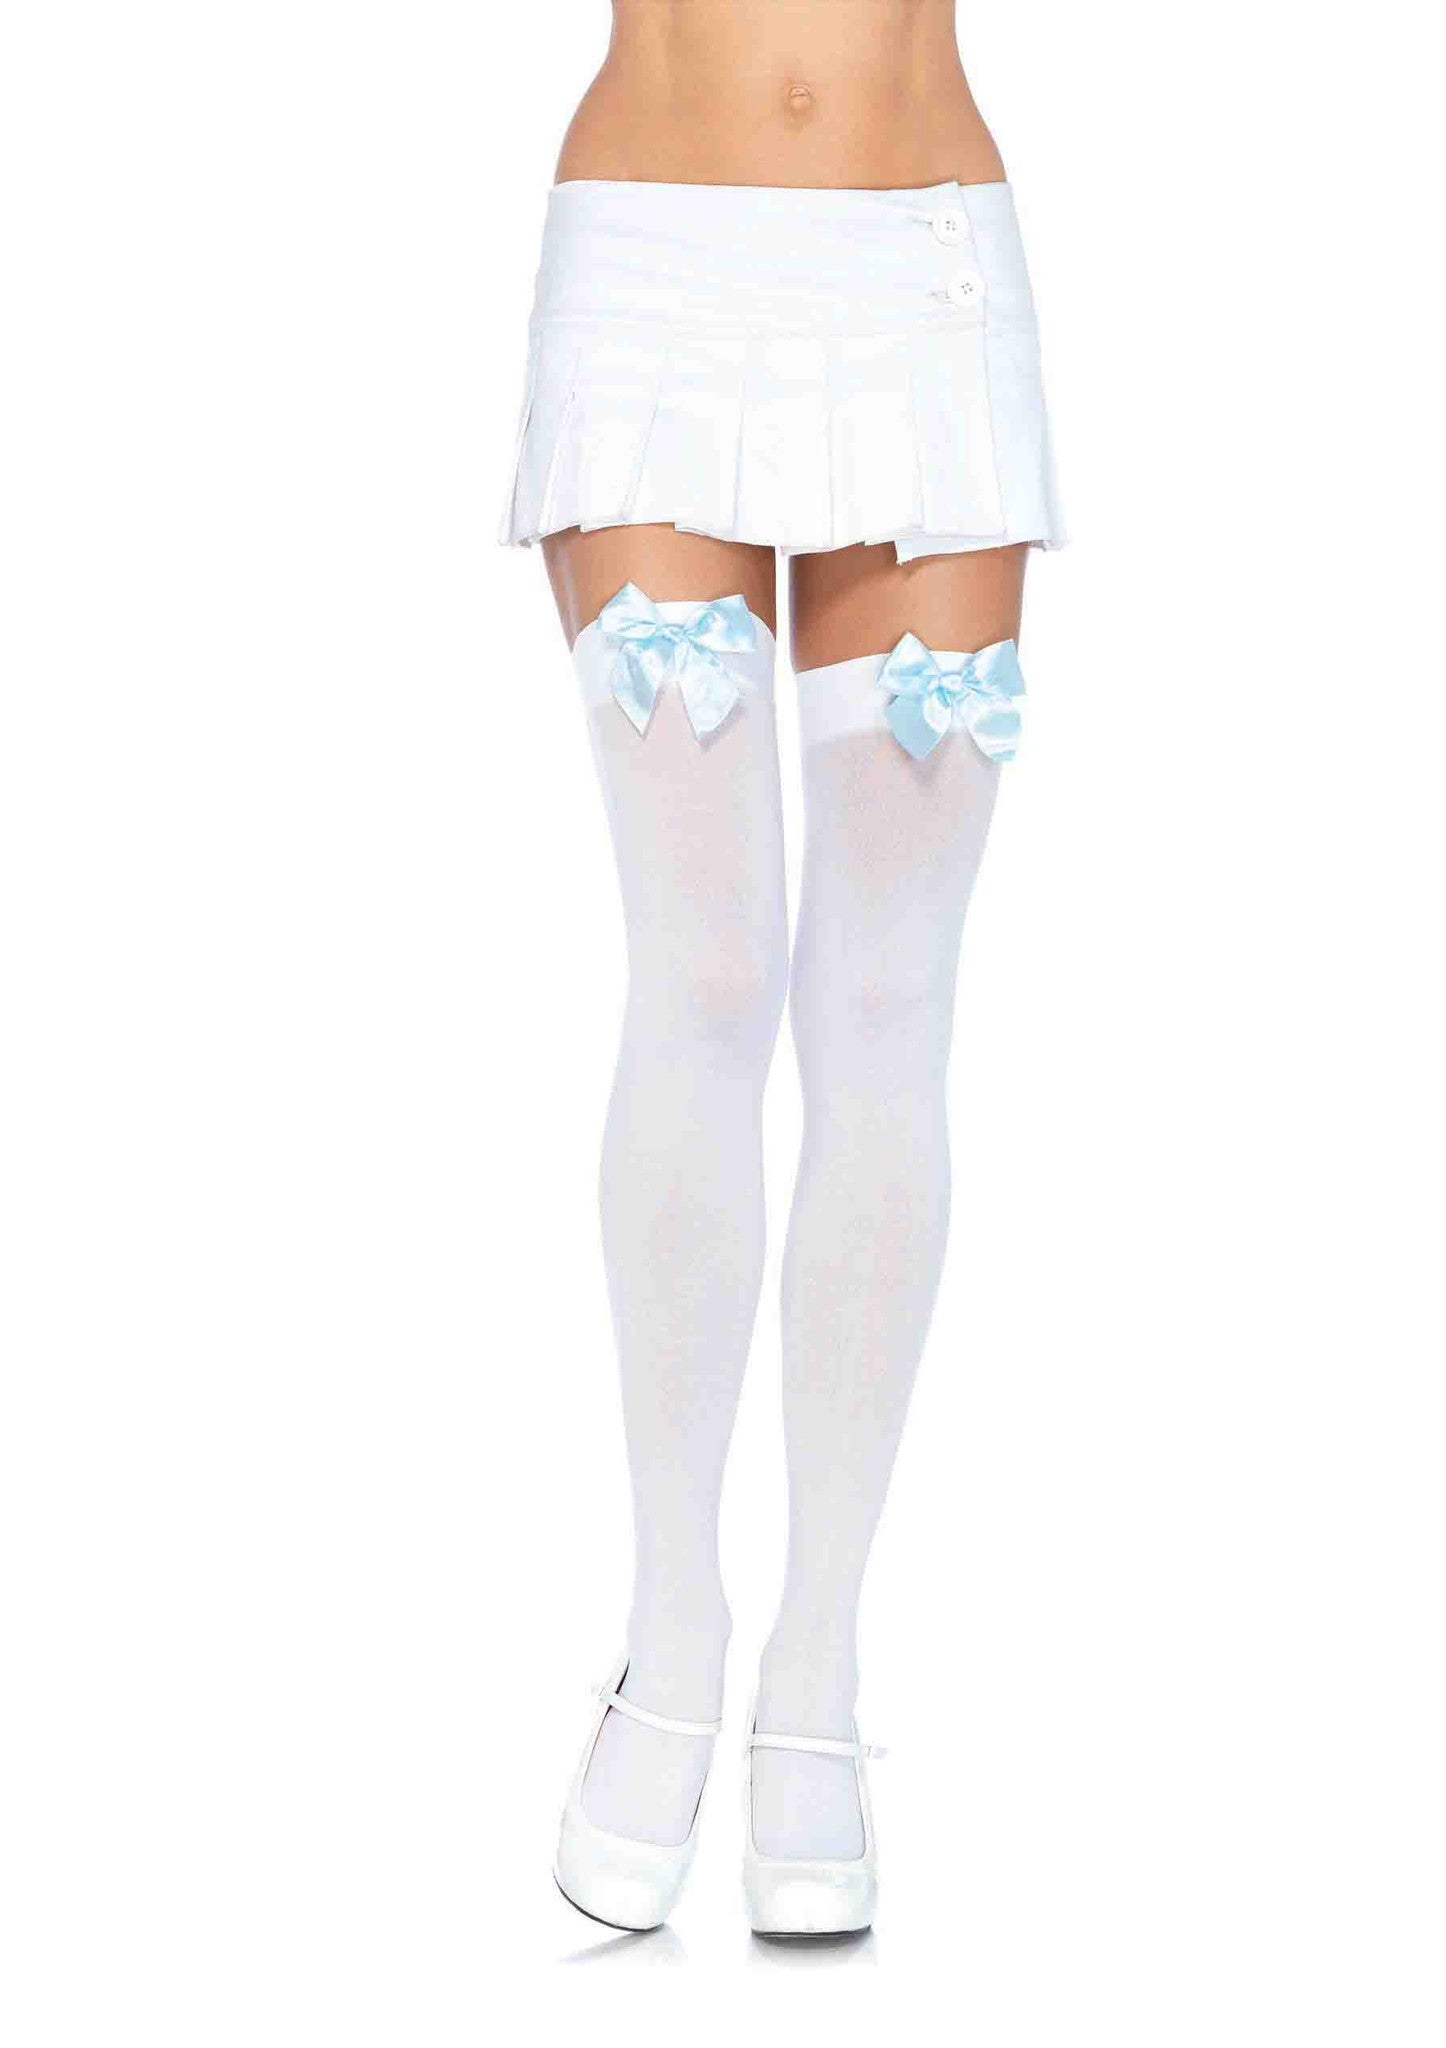 5332e11a9 Fantasy · Hosiery   Gloves · Sexy · Opaque Thigh Hi w Bow-Wht lt. blue in  Accessories from LEGAVENUE